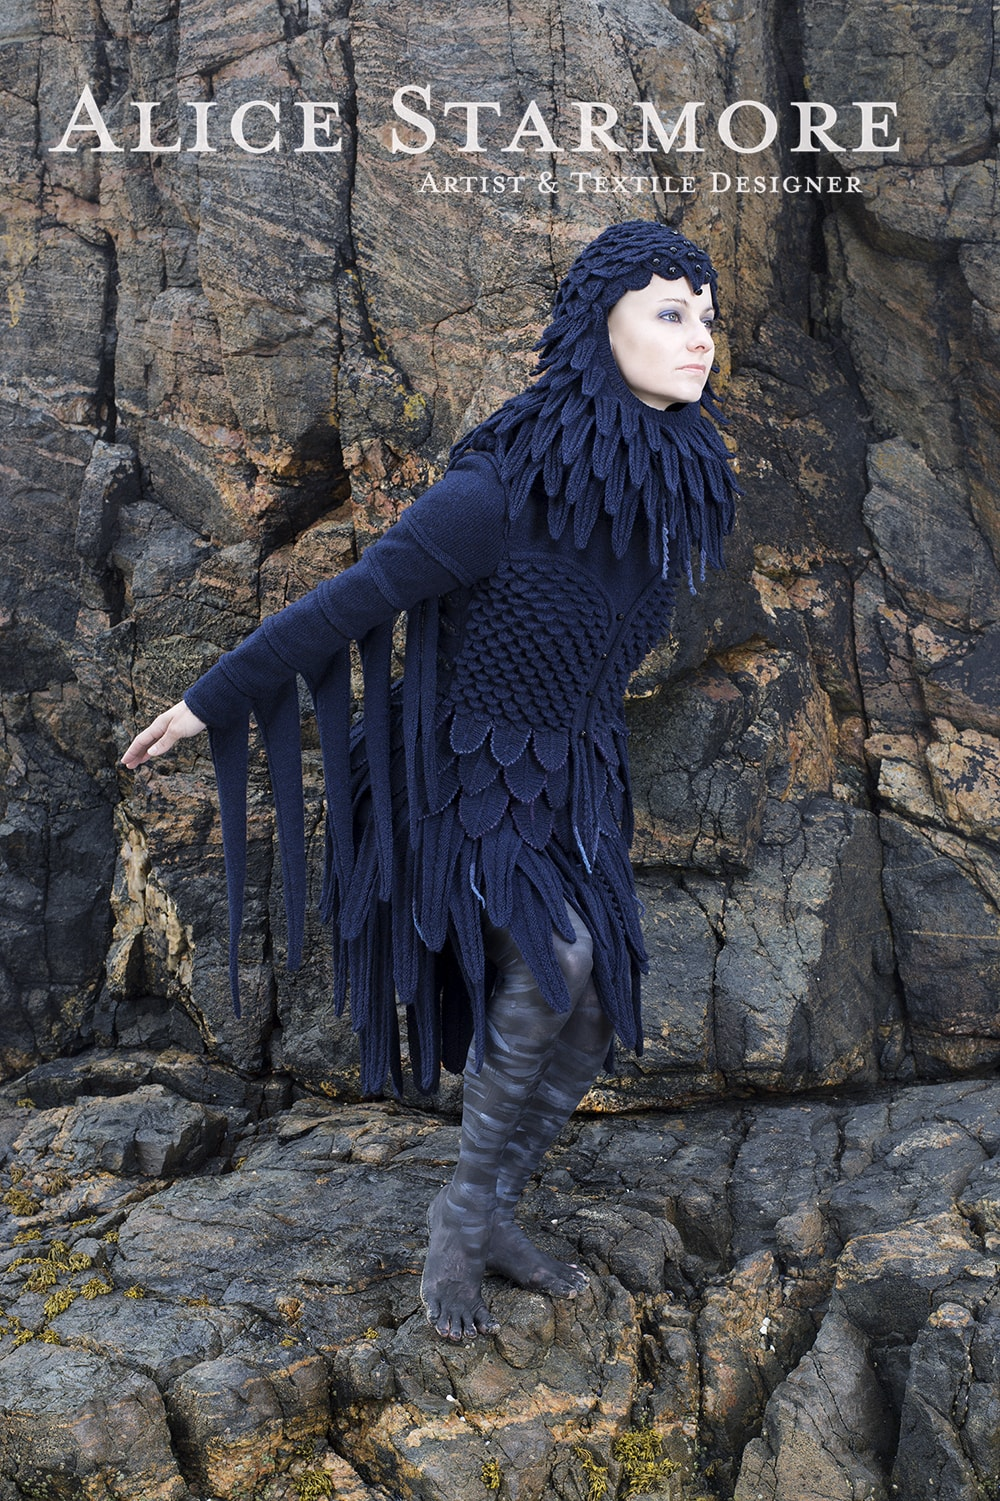 Raven costume textile art by Alice Starmore from the book Glamourie